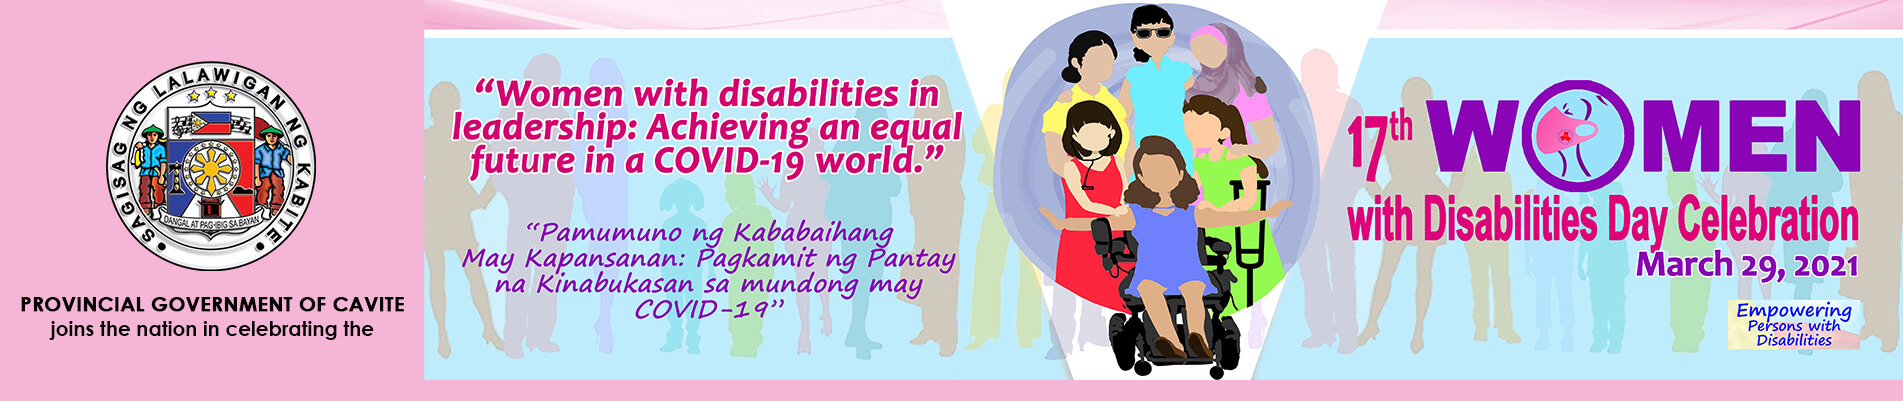 17th Women with Disabilities Day Celebration